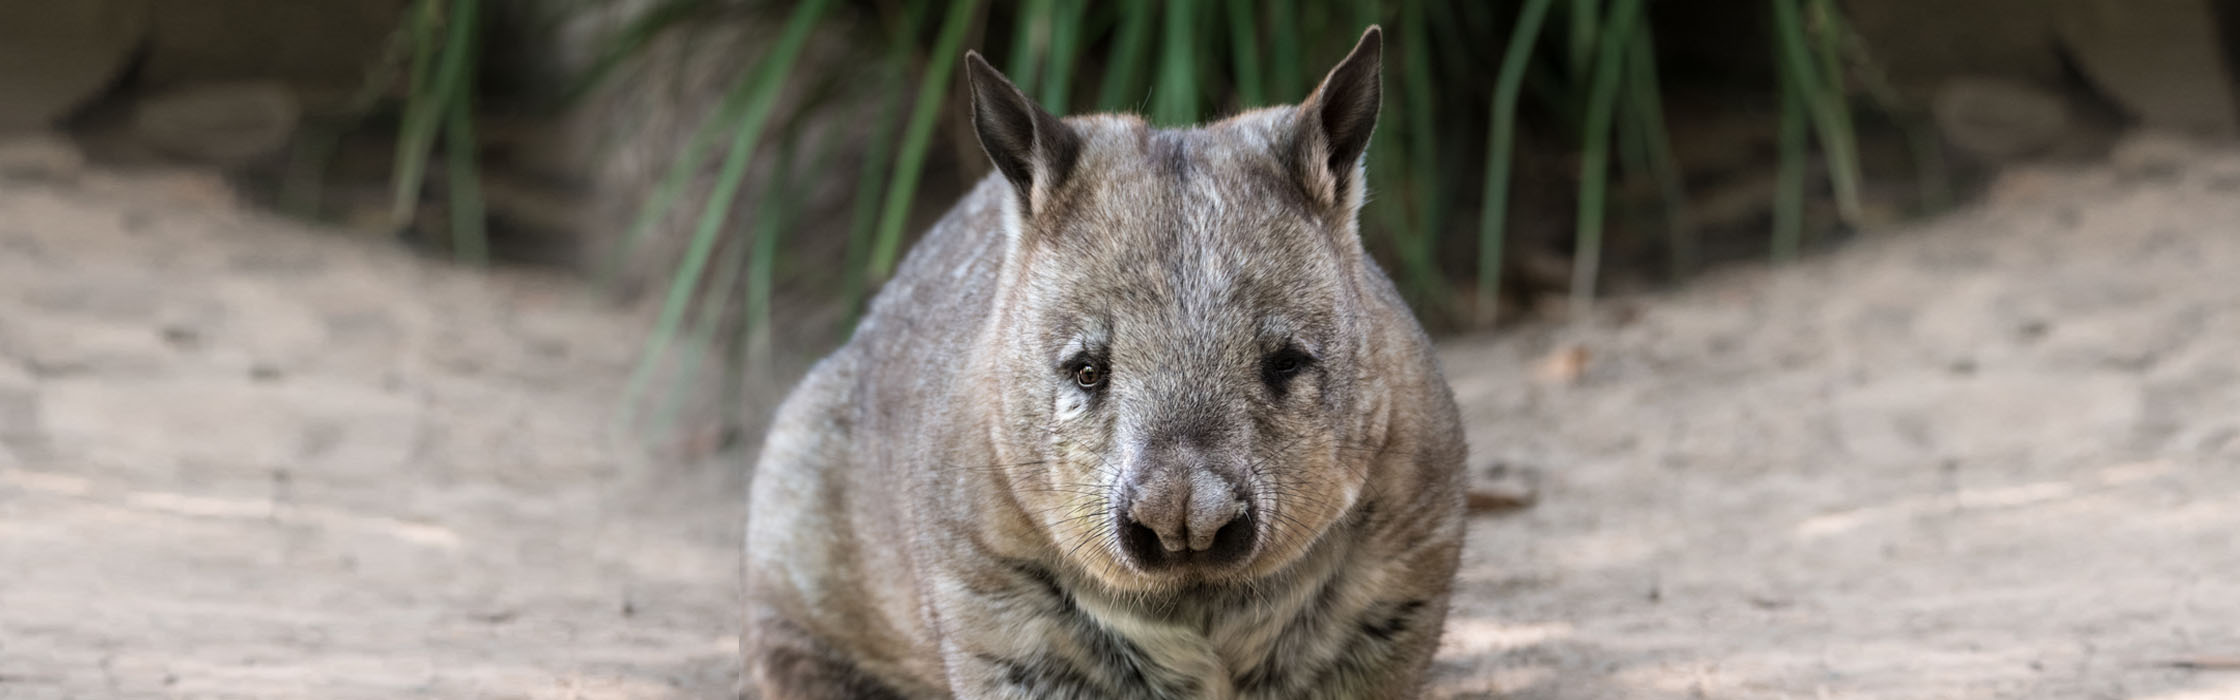 Wildlife - Our Animals - Wombat - Southern Hairy-Nosed2240x700